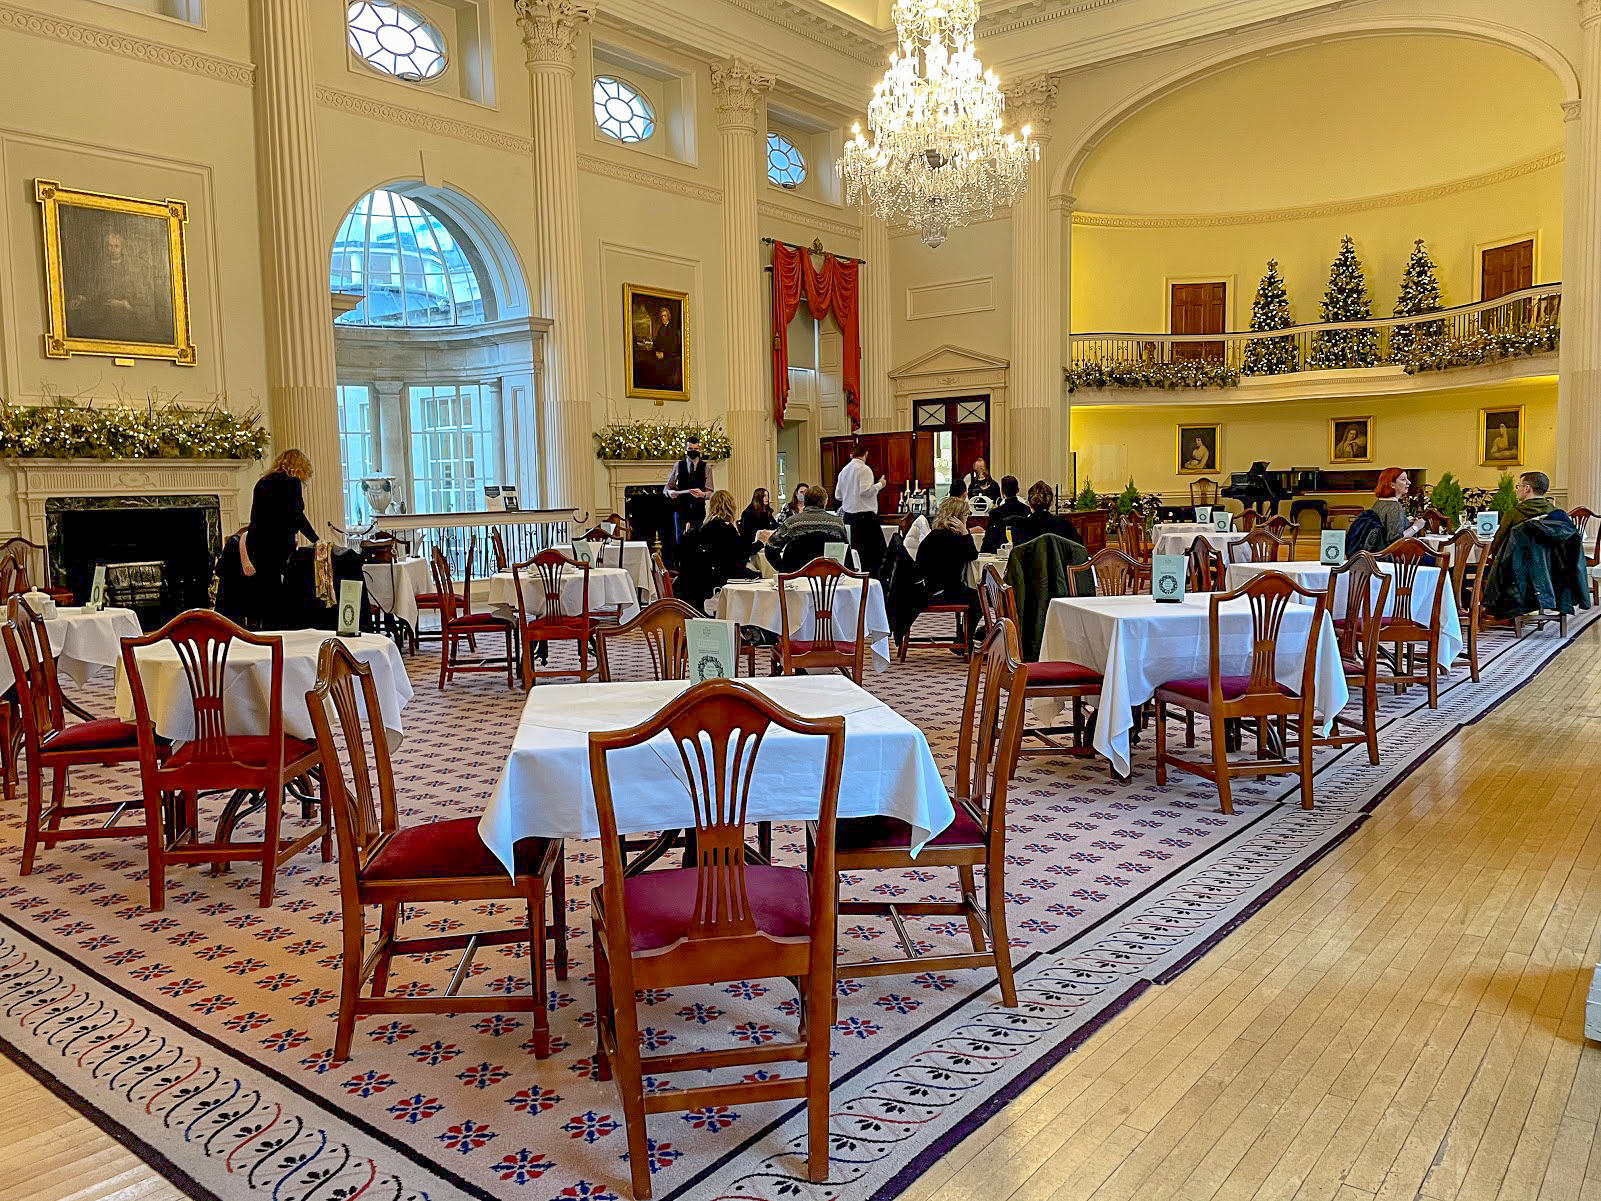 The table and chairs in The Pump Room Bath